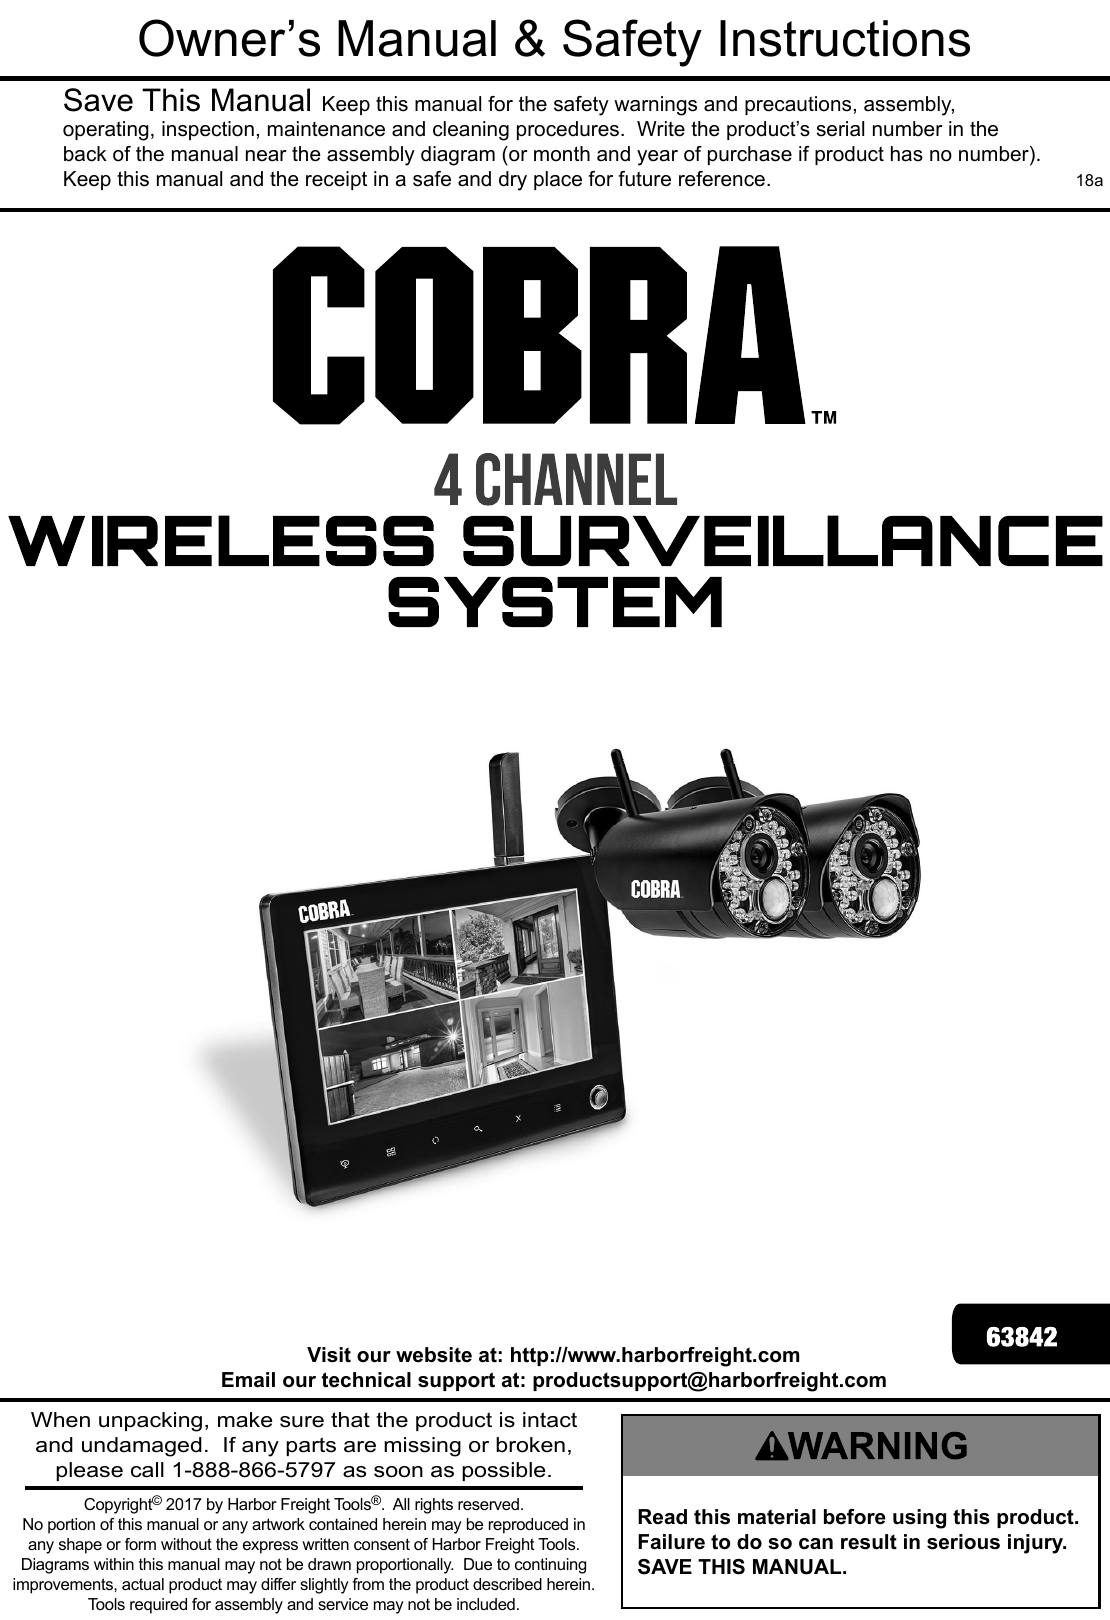 Parts Of A Home Security Camera System Manual Guide